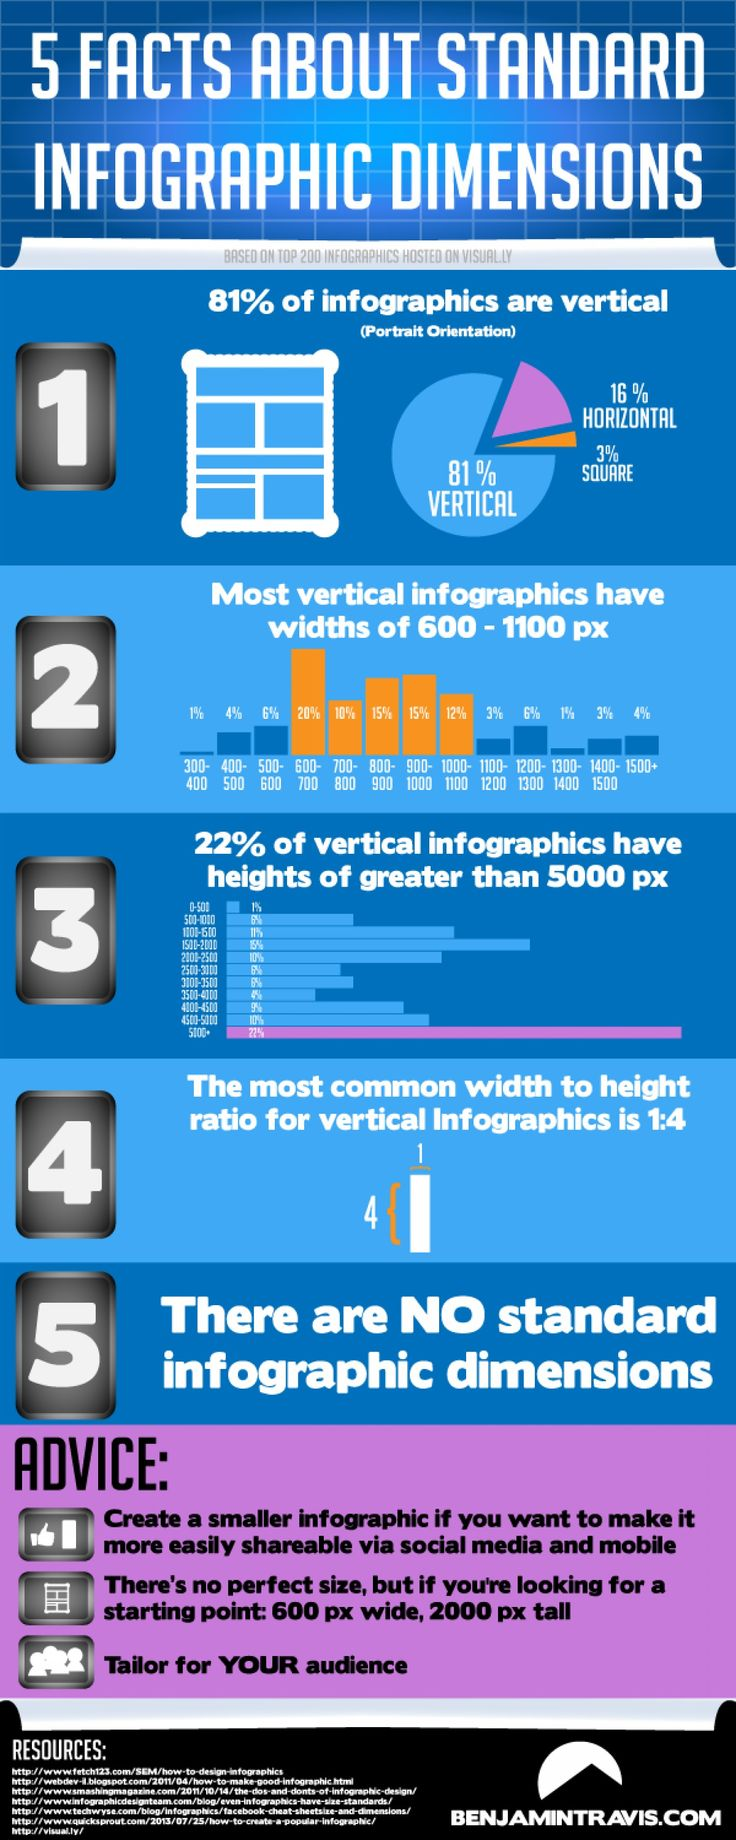 339 Best Images About Infographic And Visual Resumes On